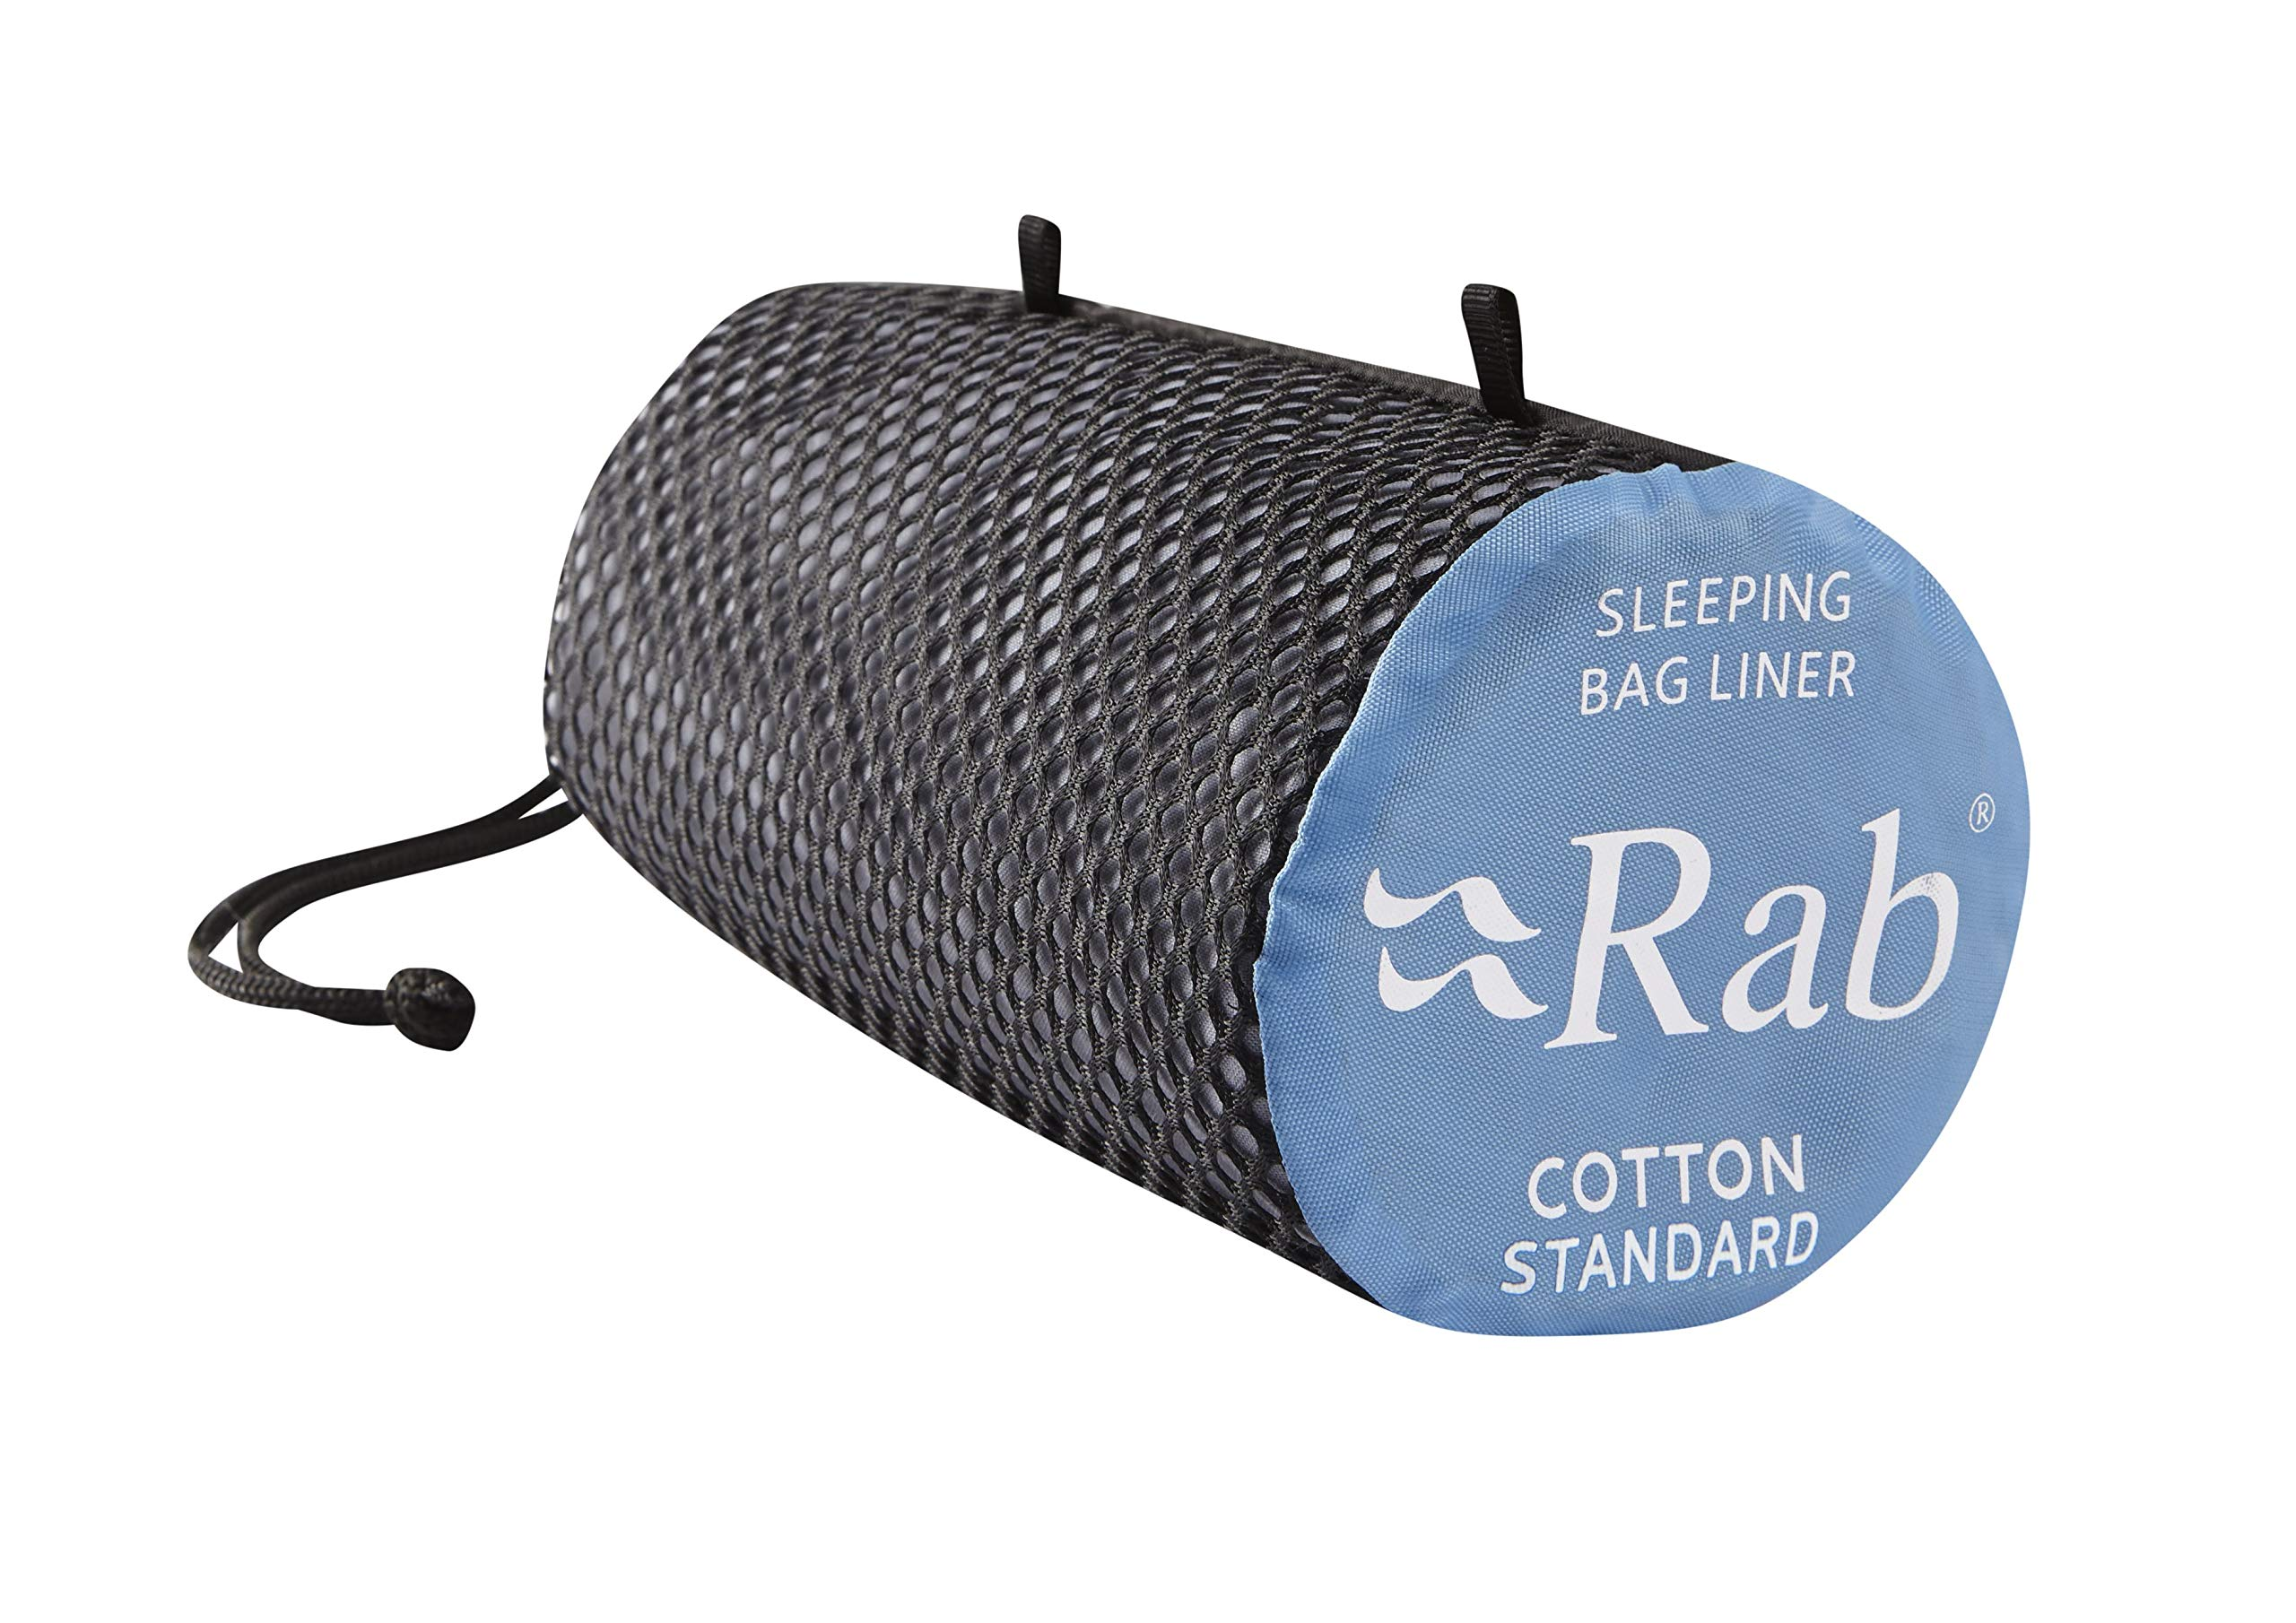 RAB Cotton Sleeping Bag Liner - Standard by RAB